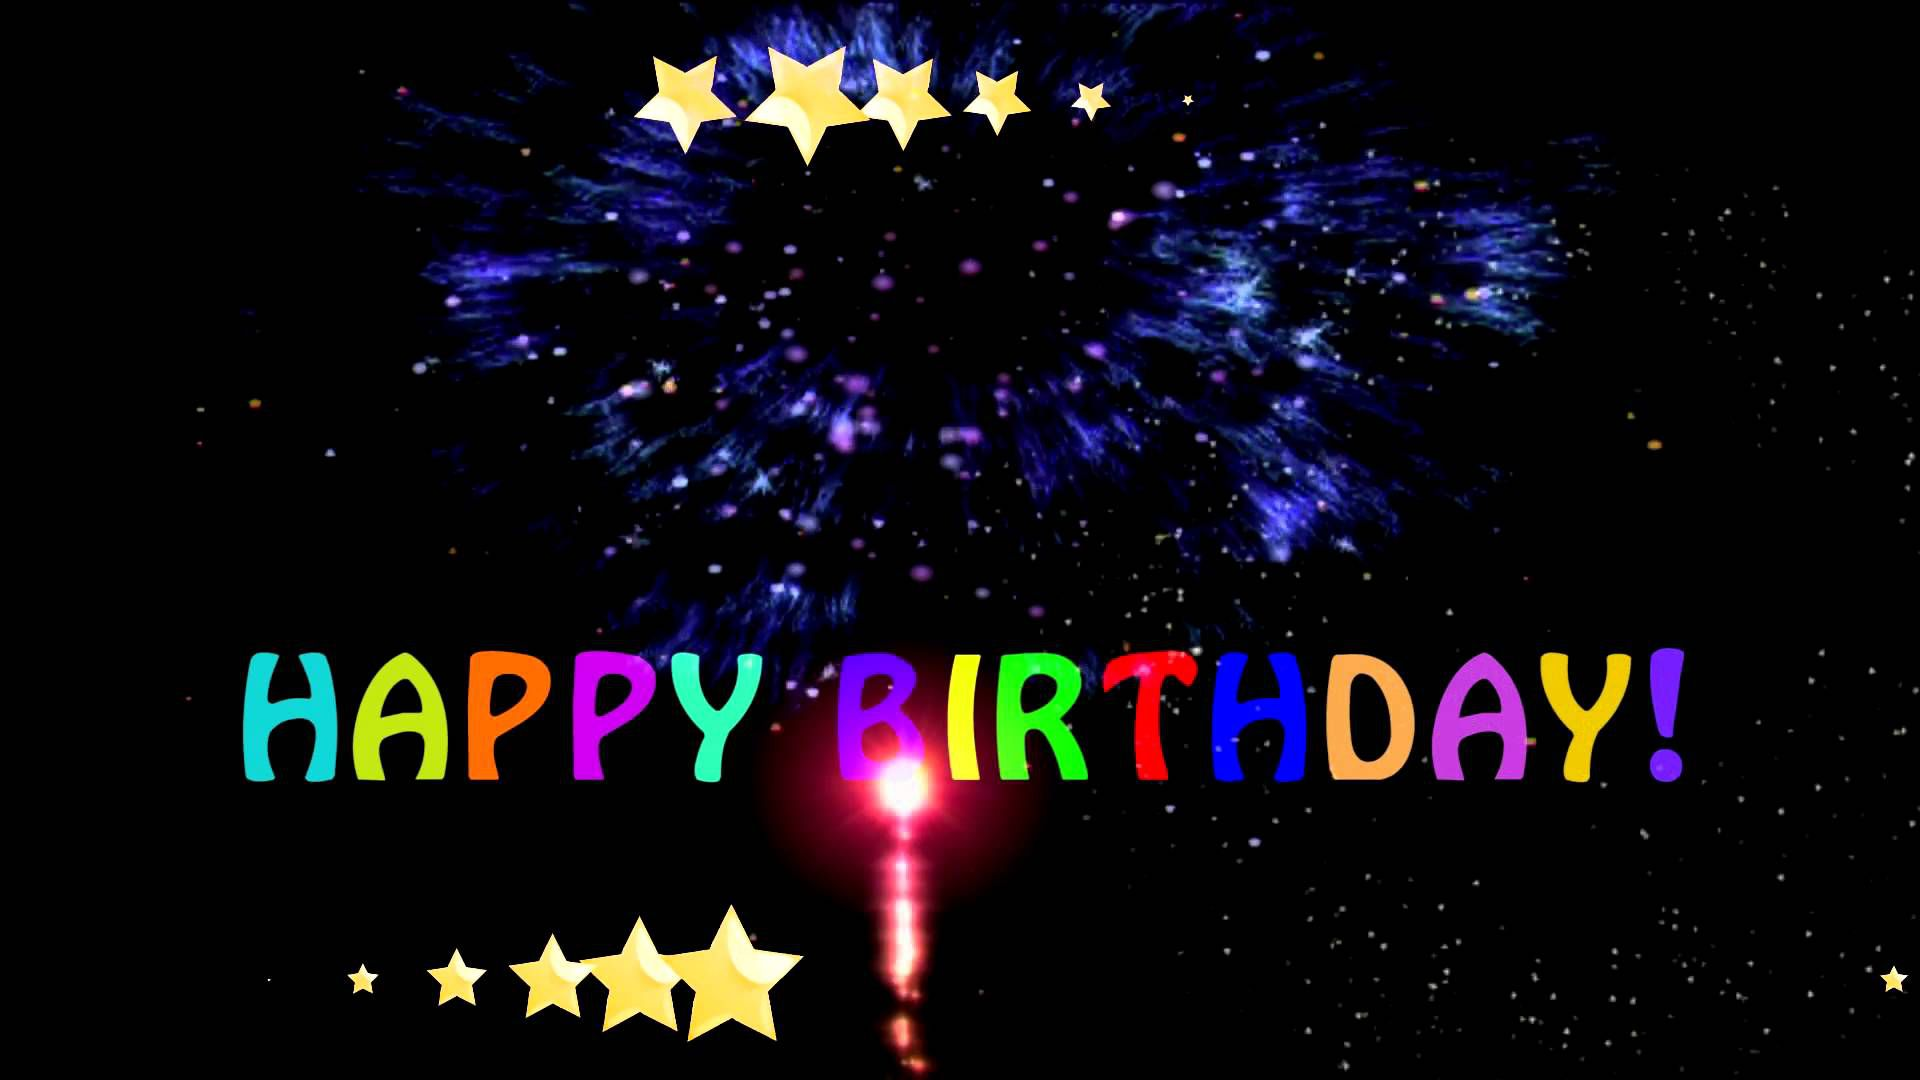 download happy birthday animated wallpaper free download